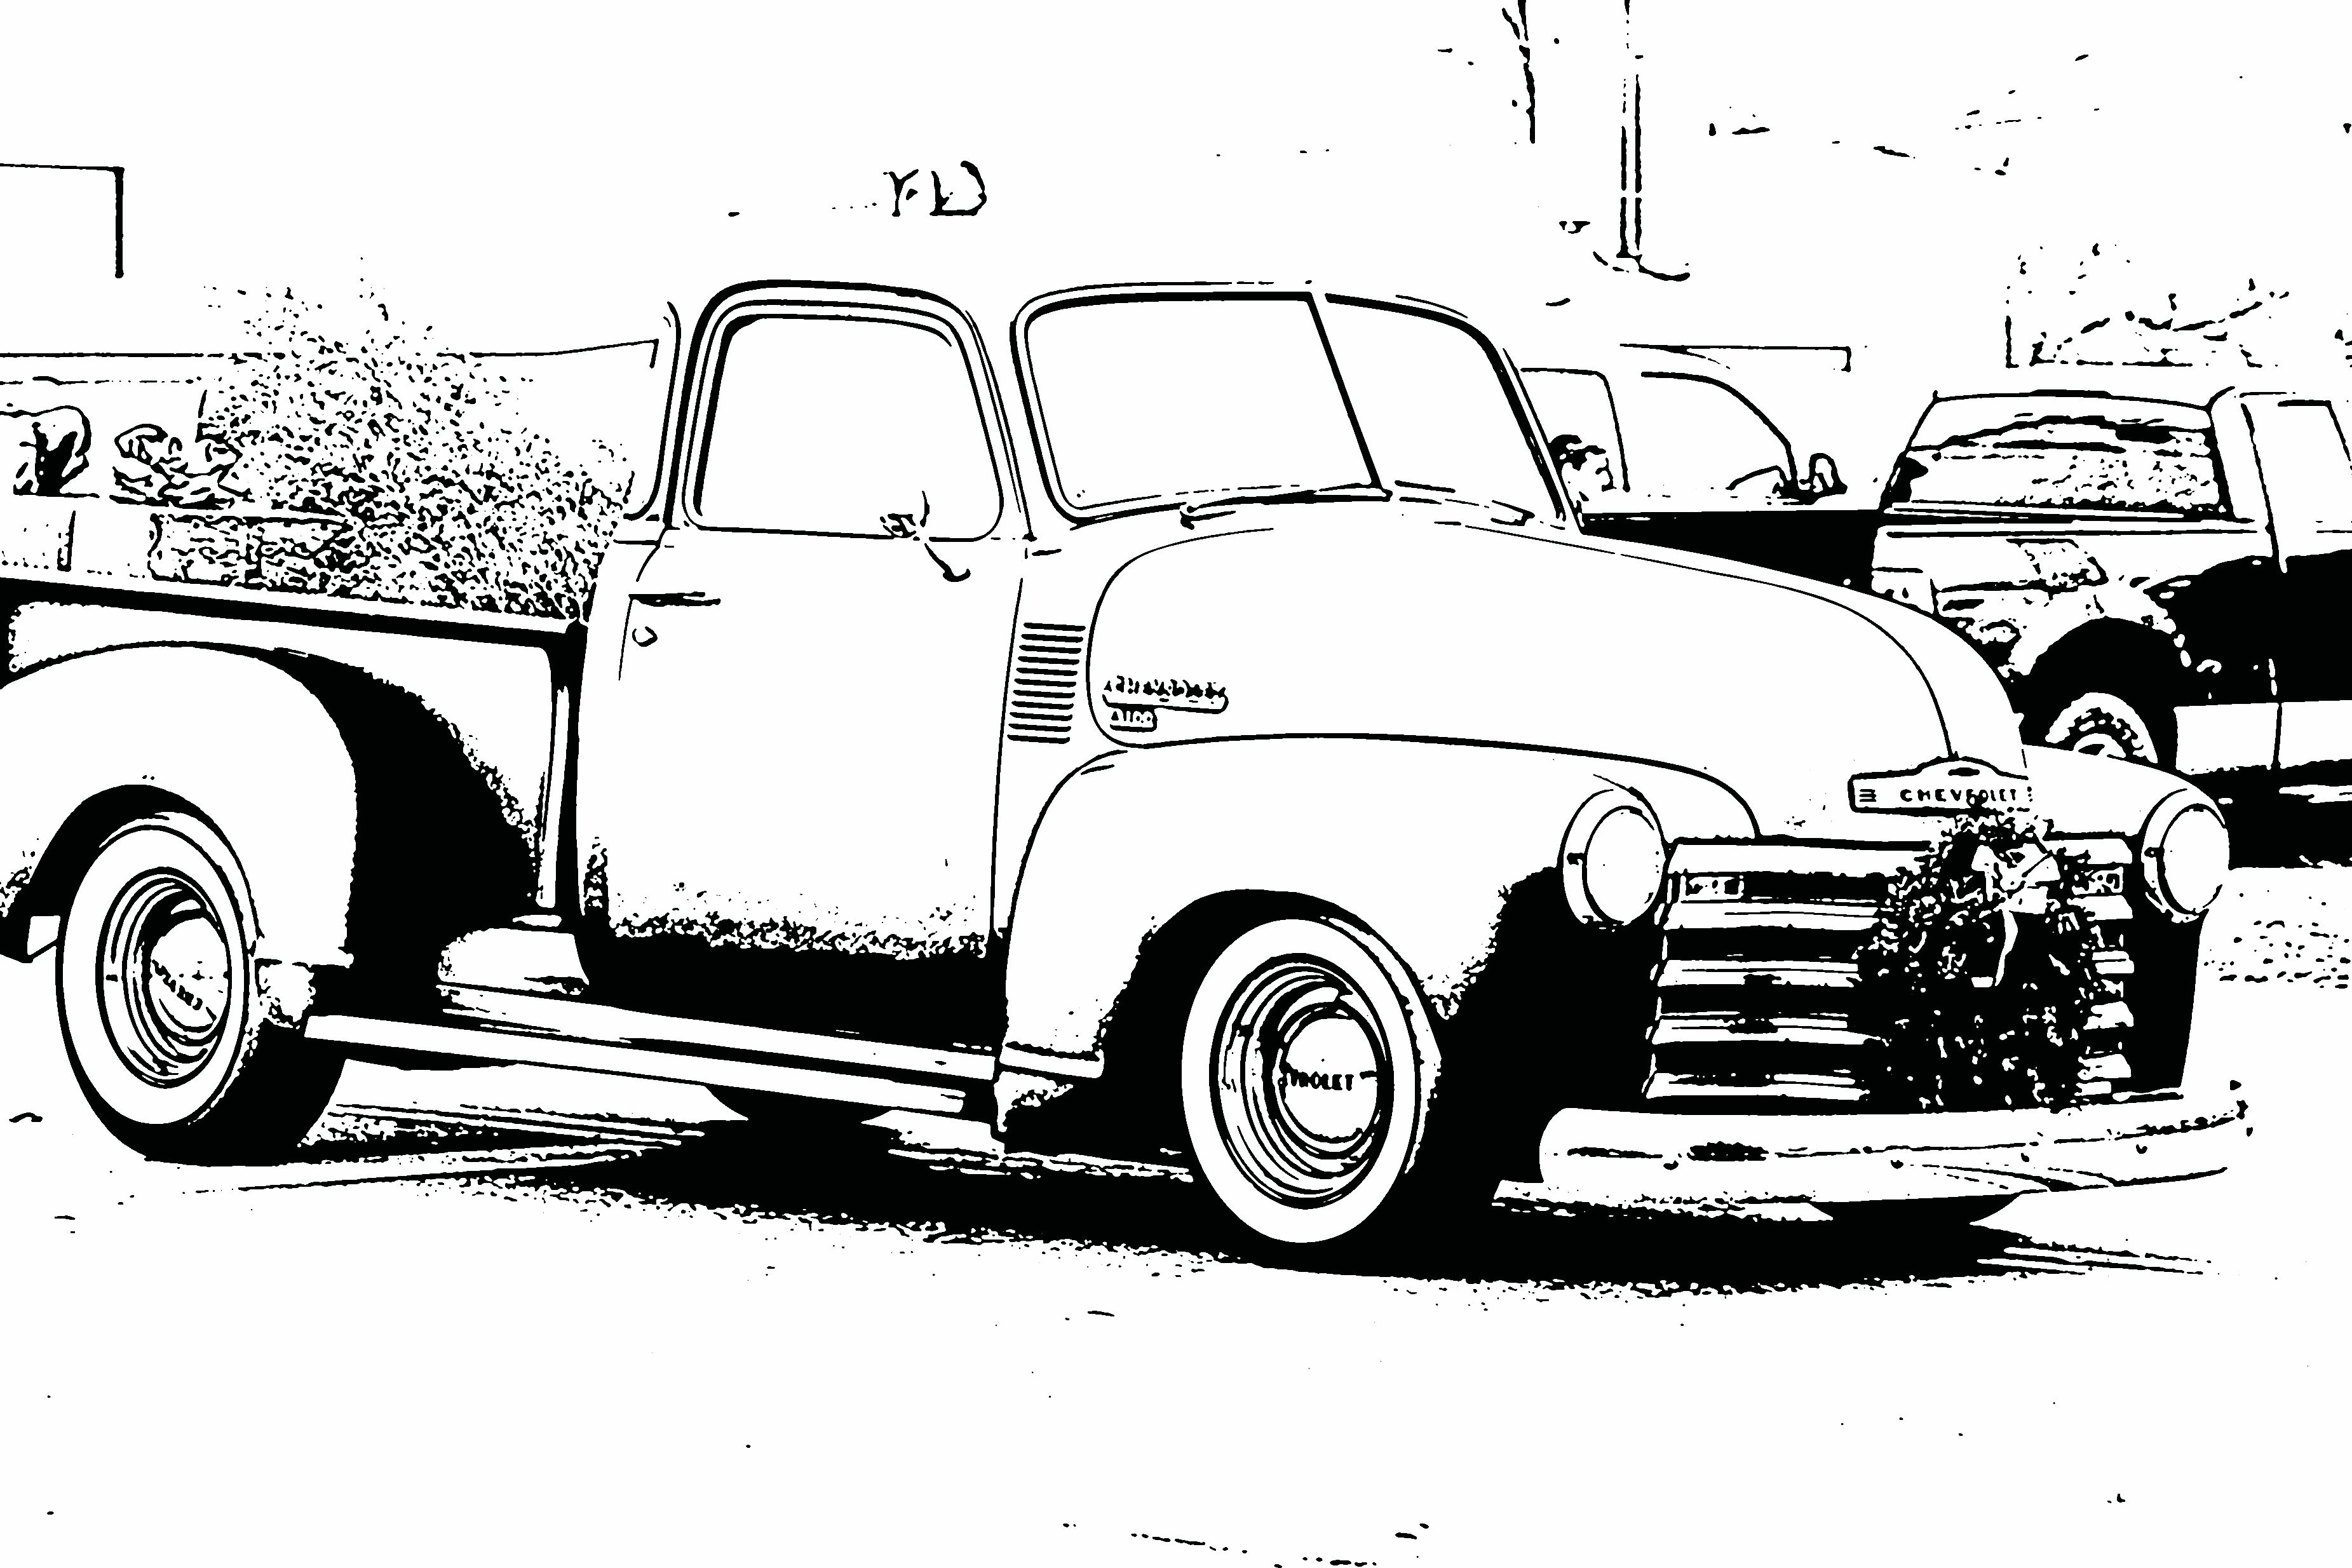 Car Truck Coloring Pages : Free coloring sheets pictures of vintage cars for kids bring a